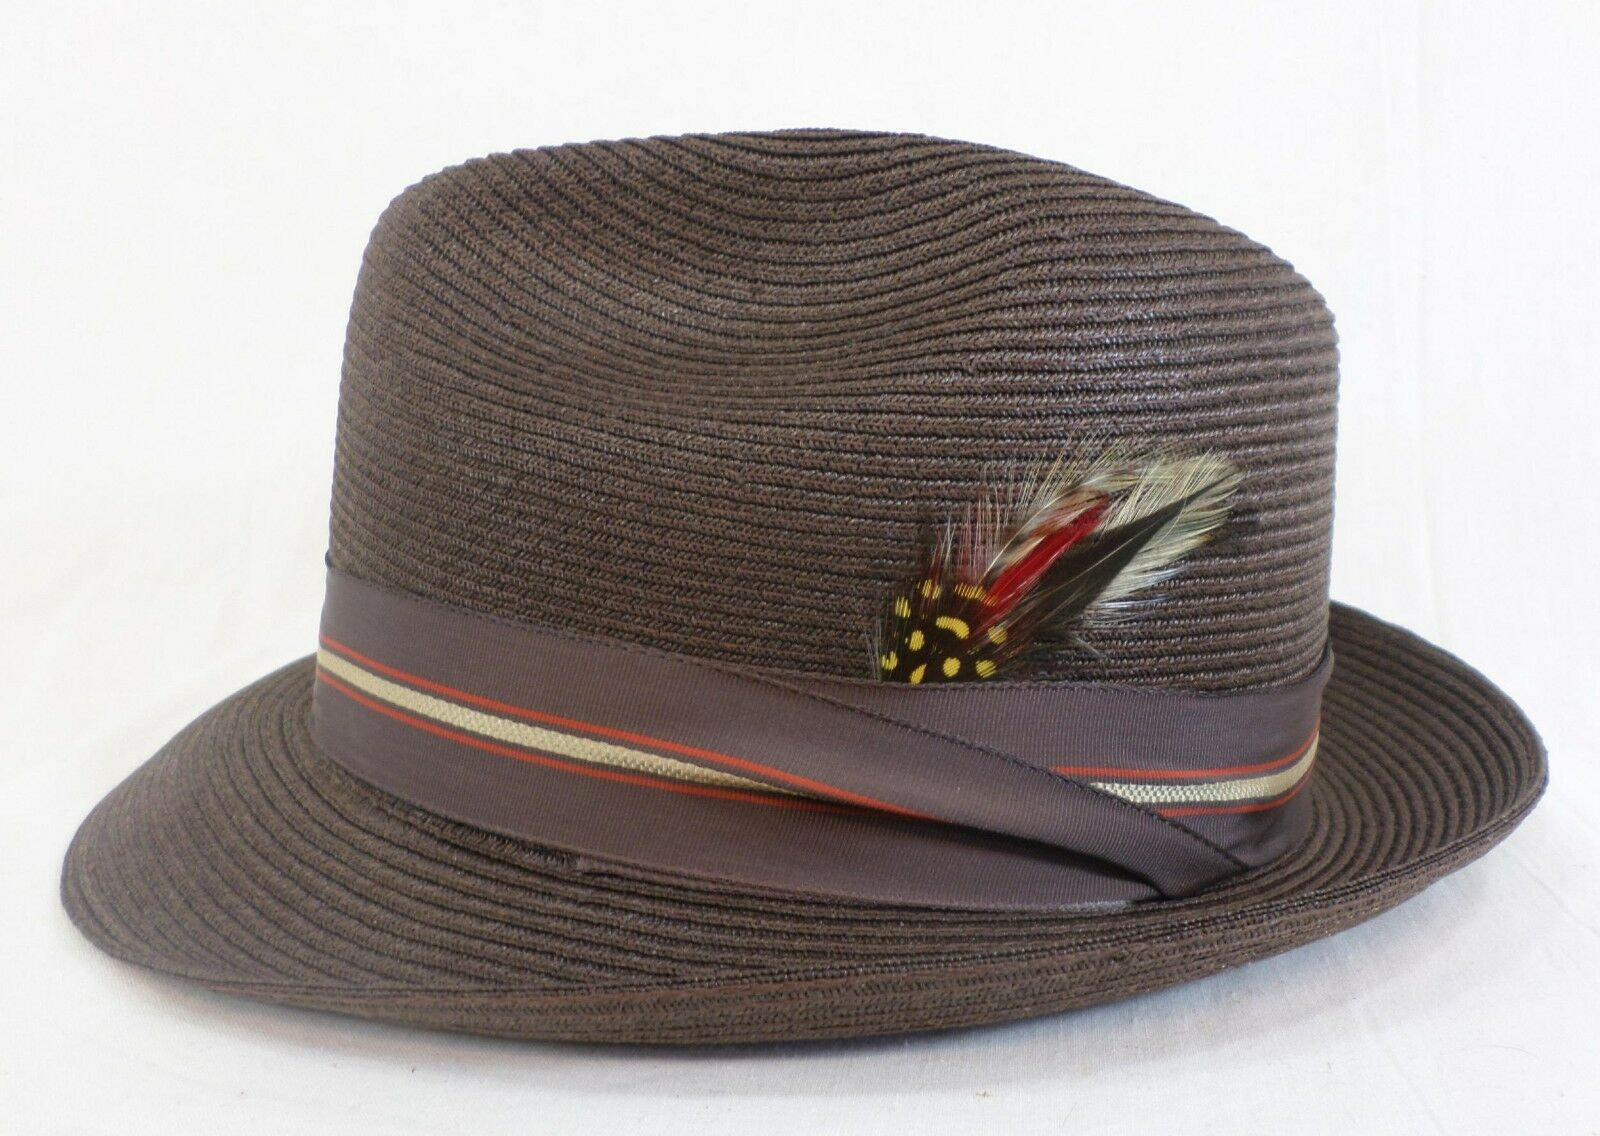 Reed Hill Snap Brim Marroneee Straw Dimensione 6 12 MADE IN USA